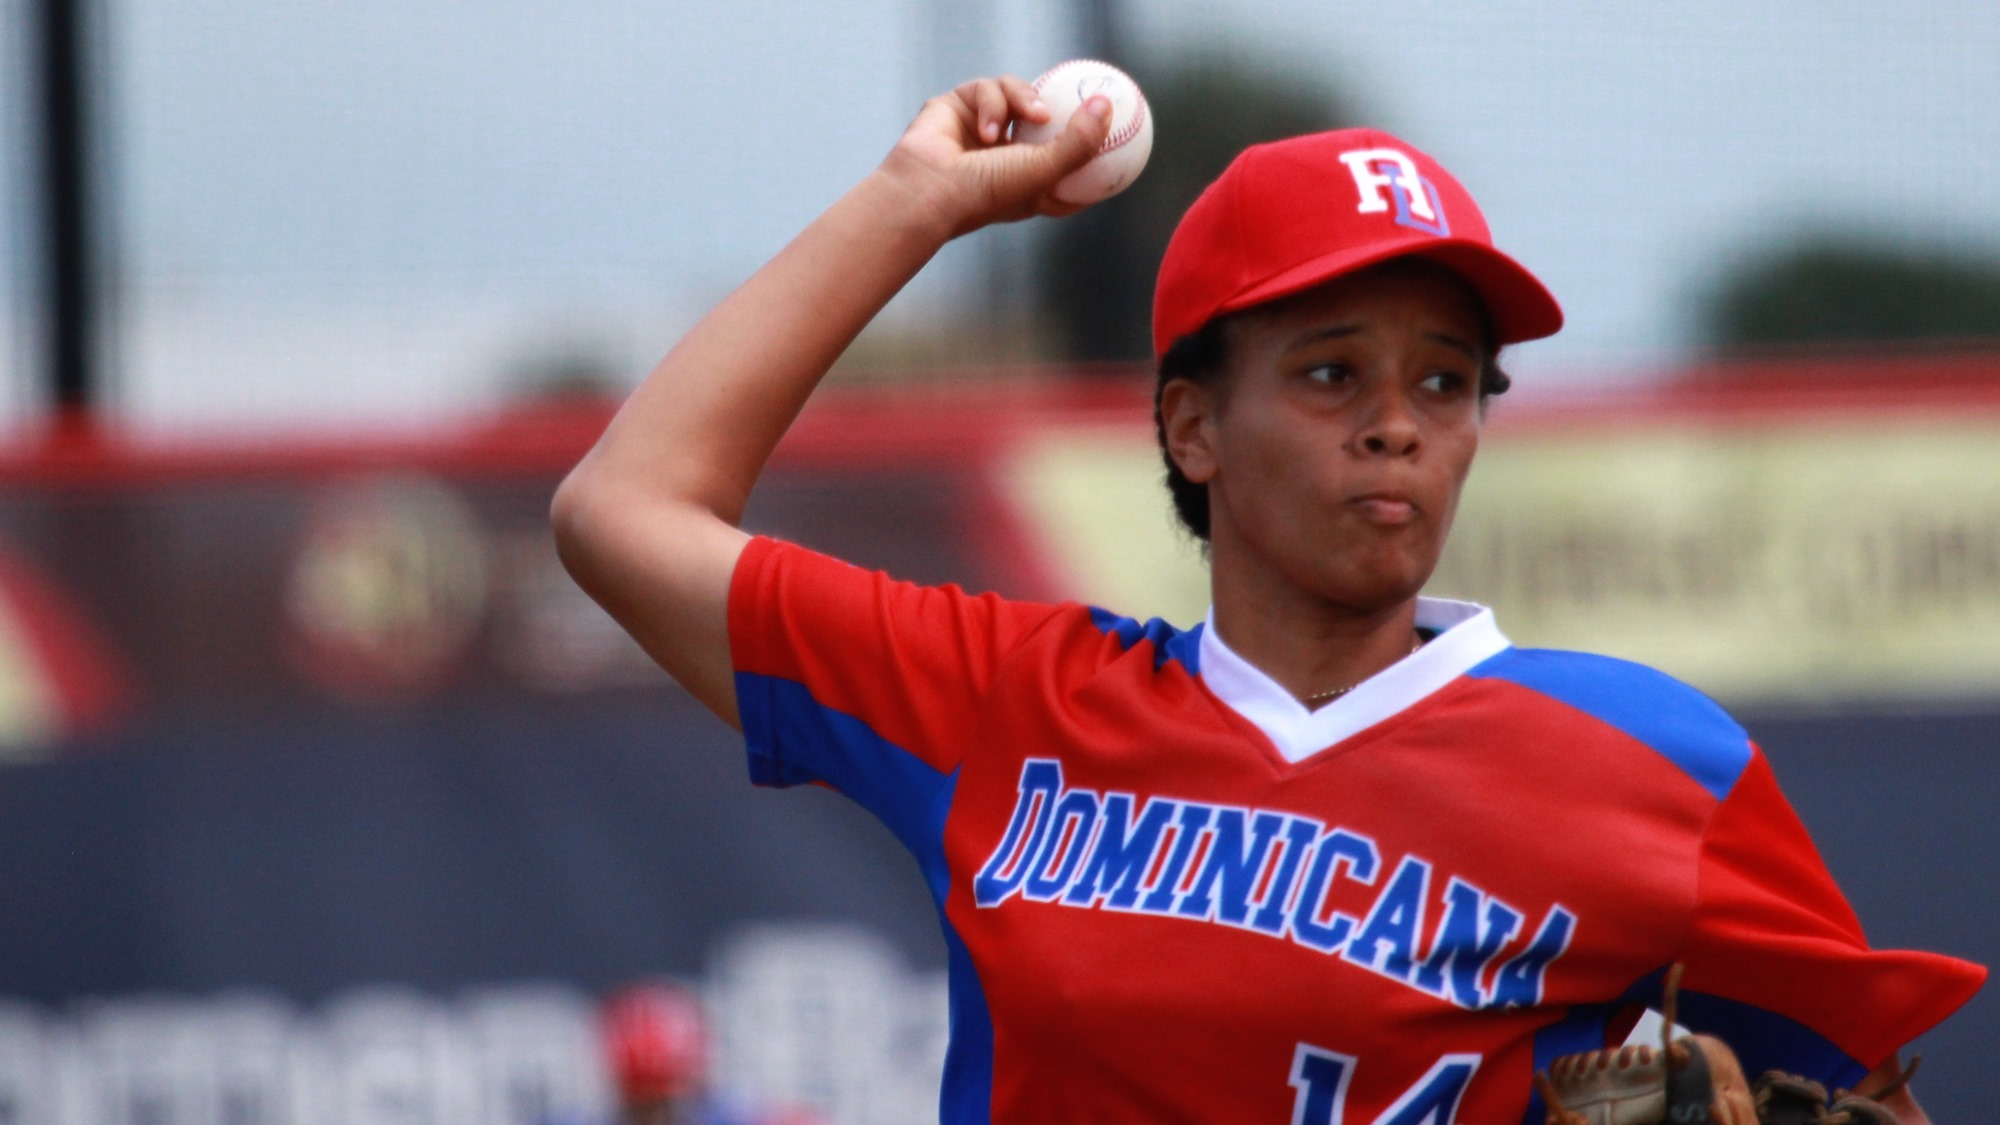 Carla Minier went the distance for Dominican Republic against Hong Kong